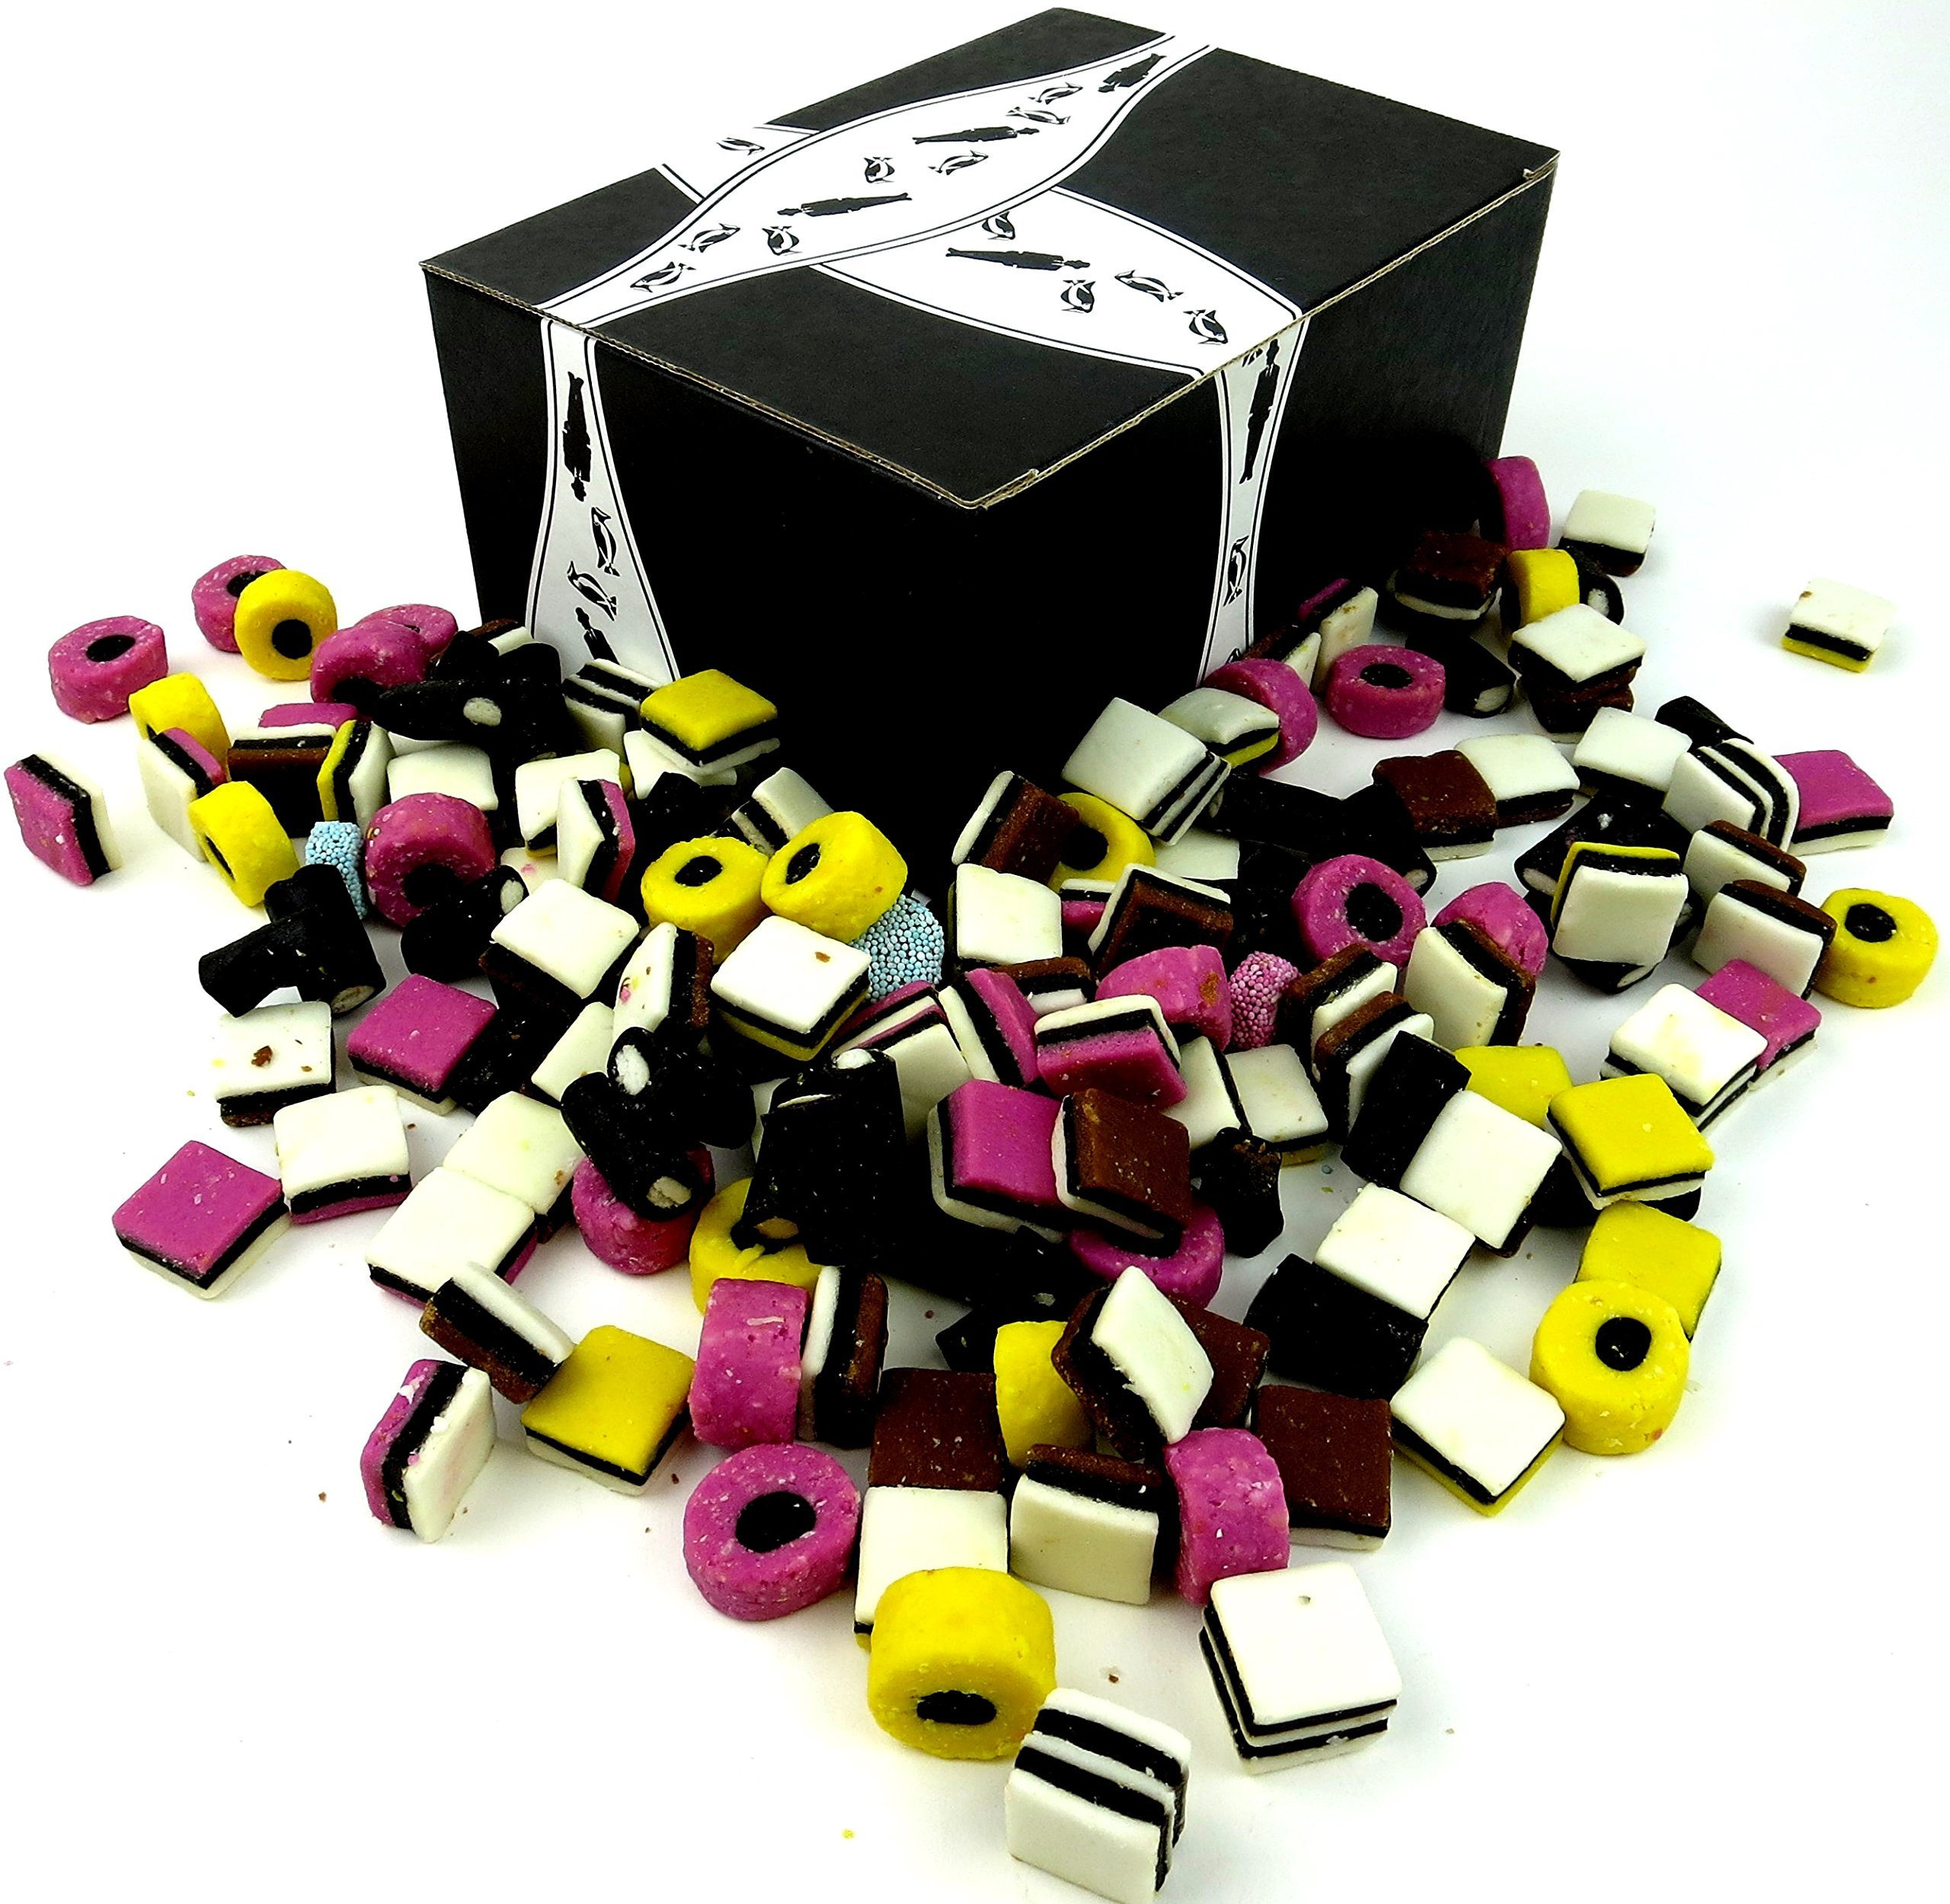 Licorice Allsorts by Cuckoo Luckoo Confections, 3 lb Bag in a BlackTie Box